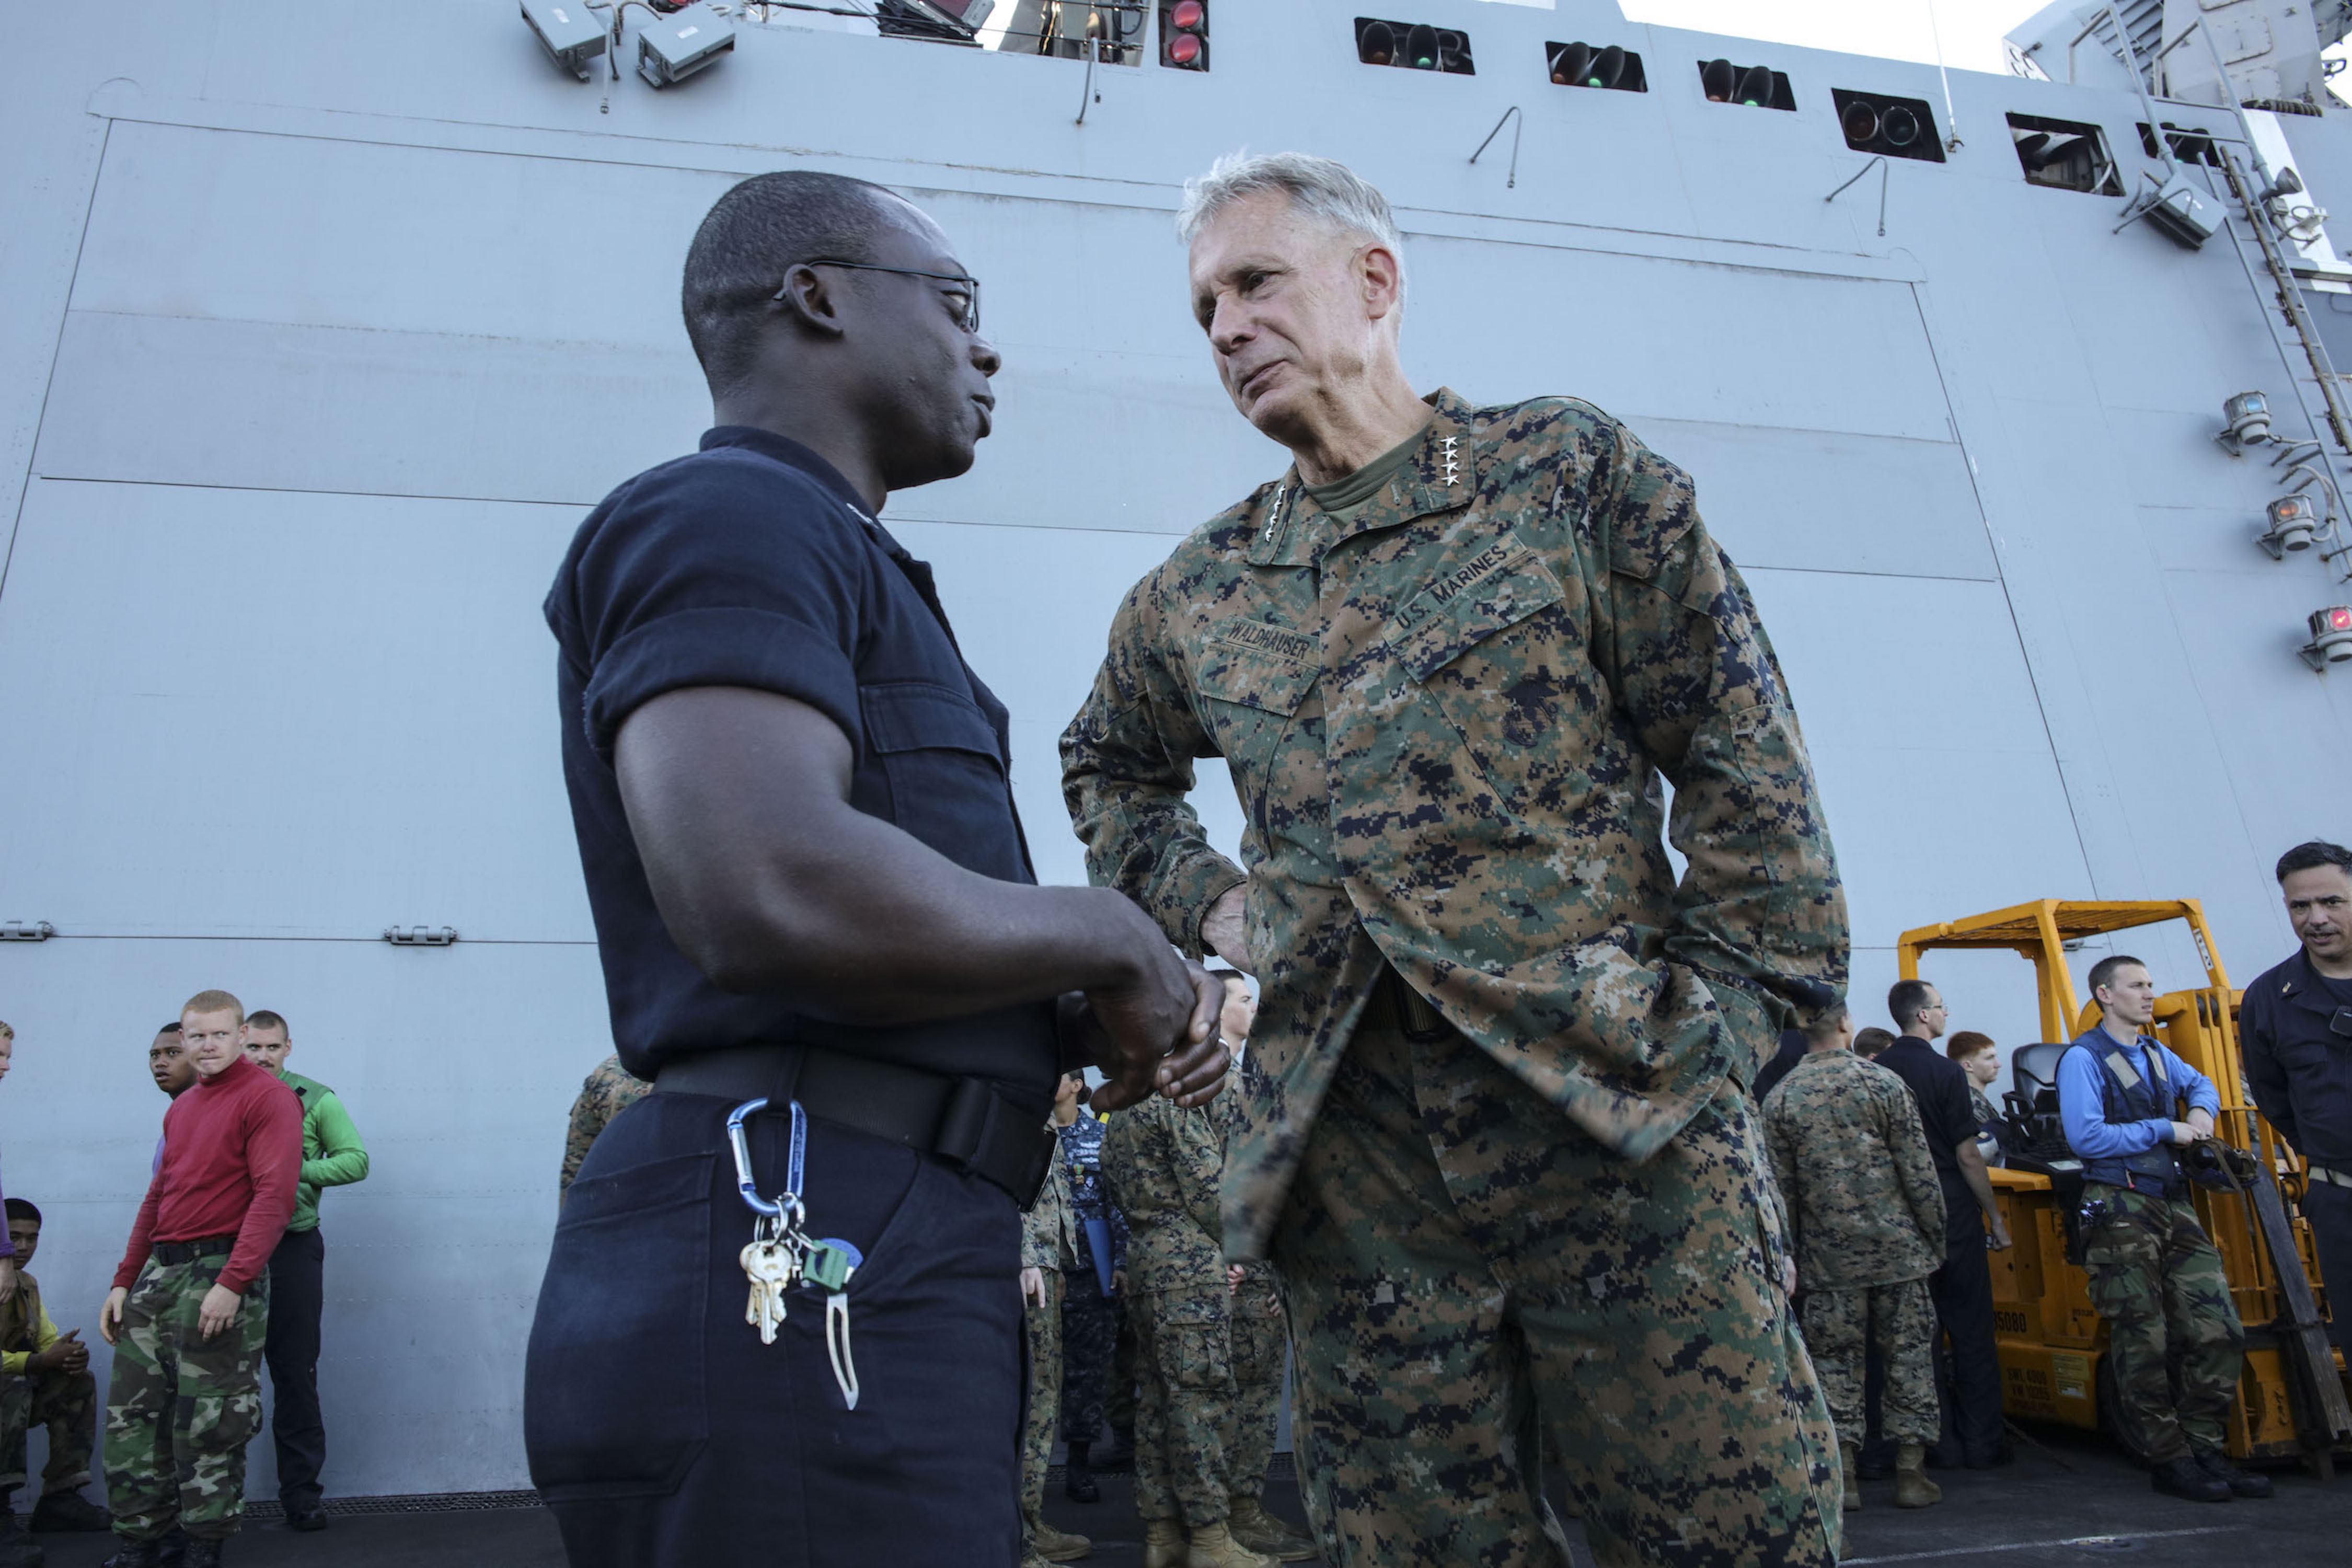 MEDITERRANEAN SEA (Sept. 6, 2017) U.S. Marine Gen. Thomas D. Waldhauser, commander, U.S. Africa Command, speaks with Hospital Corpsman 2nd Class Darren Parker aboard the San Antonio-class amphibious transport dock ship USS Mesa Verde (LPD 19) Sept. 6, 2017. The ship is deployed with the Bataan Amphibious Ready Group and 24th Marine Expeditionary Unit to support maritime security operations and theater security cooperation efforts in the U.S. 6th Fleet area of operations. (U.S. Navy photo by Mass Communication Specialist 2nd Class Brent Pyfrom/Released)